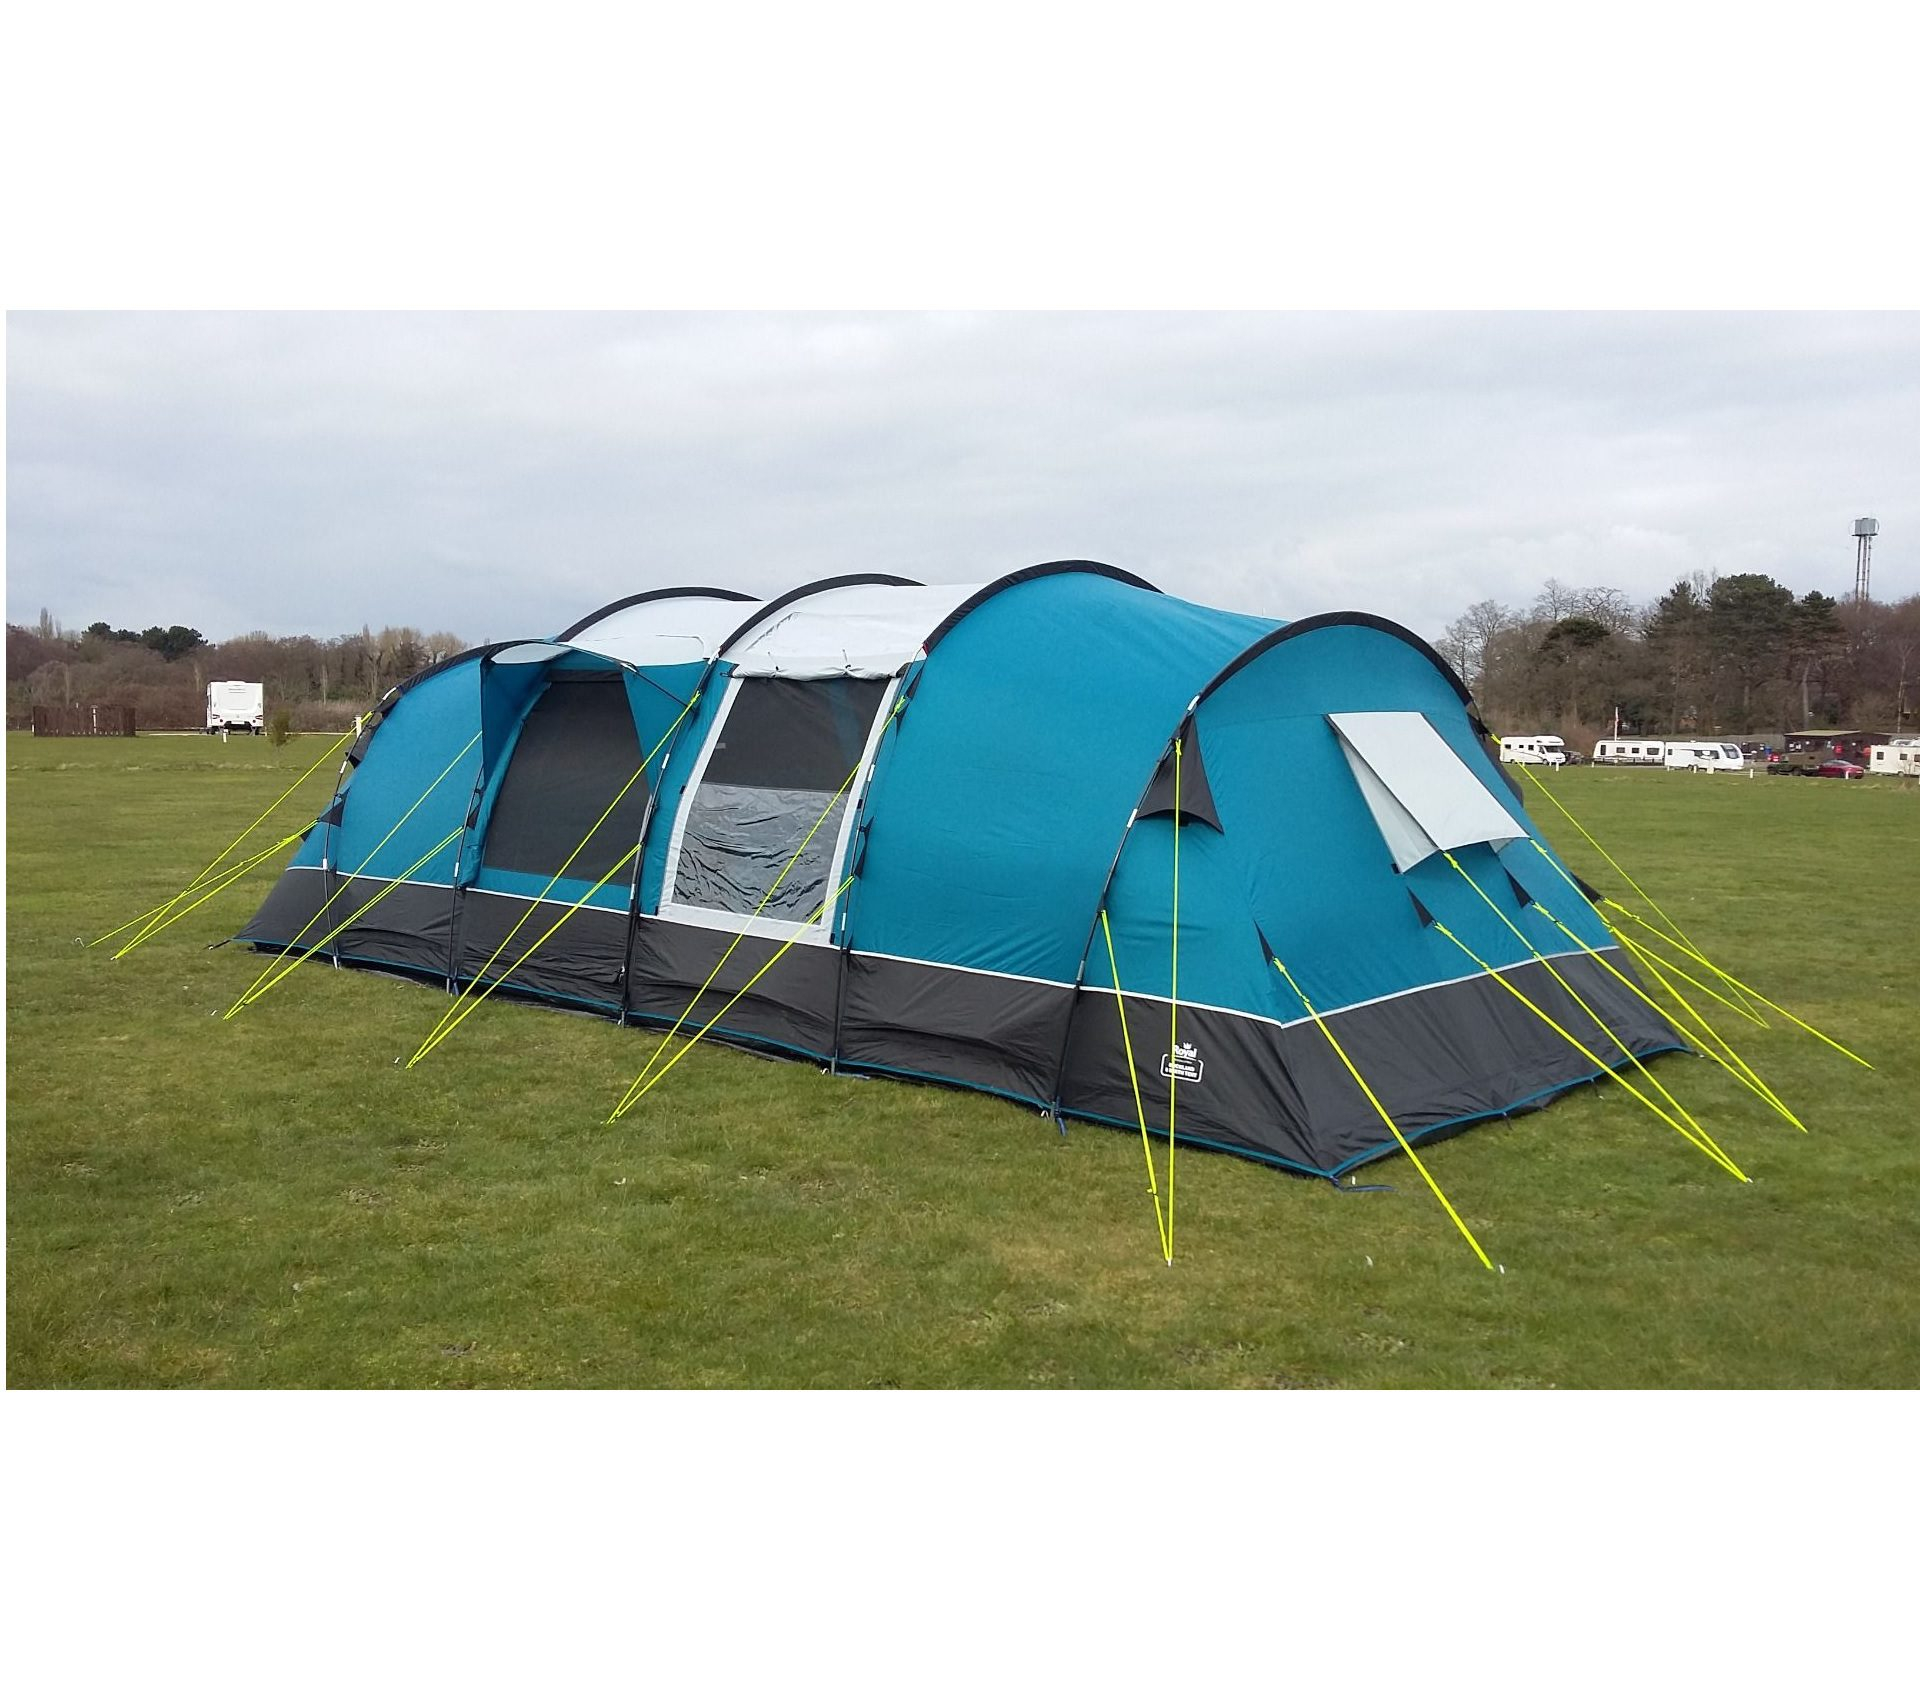 Royal Buckland 8 Poled Tent side